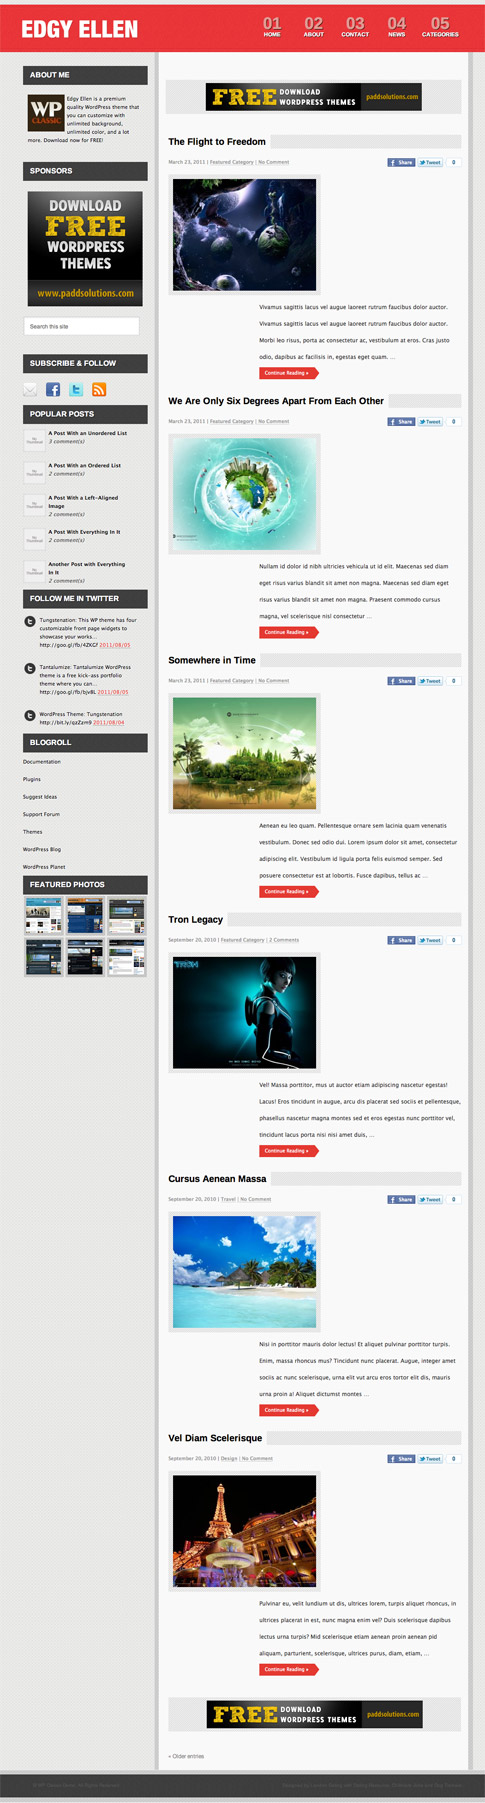 Edgy Ellen Free WordPress Theme